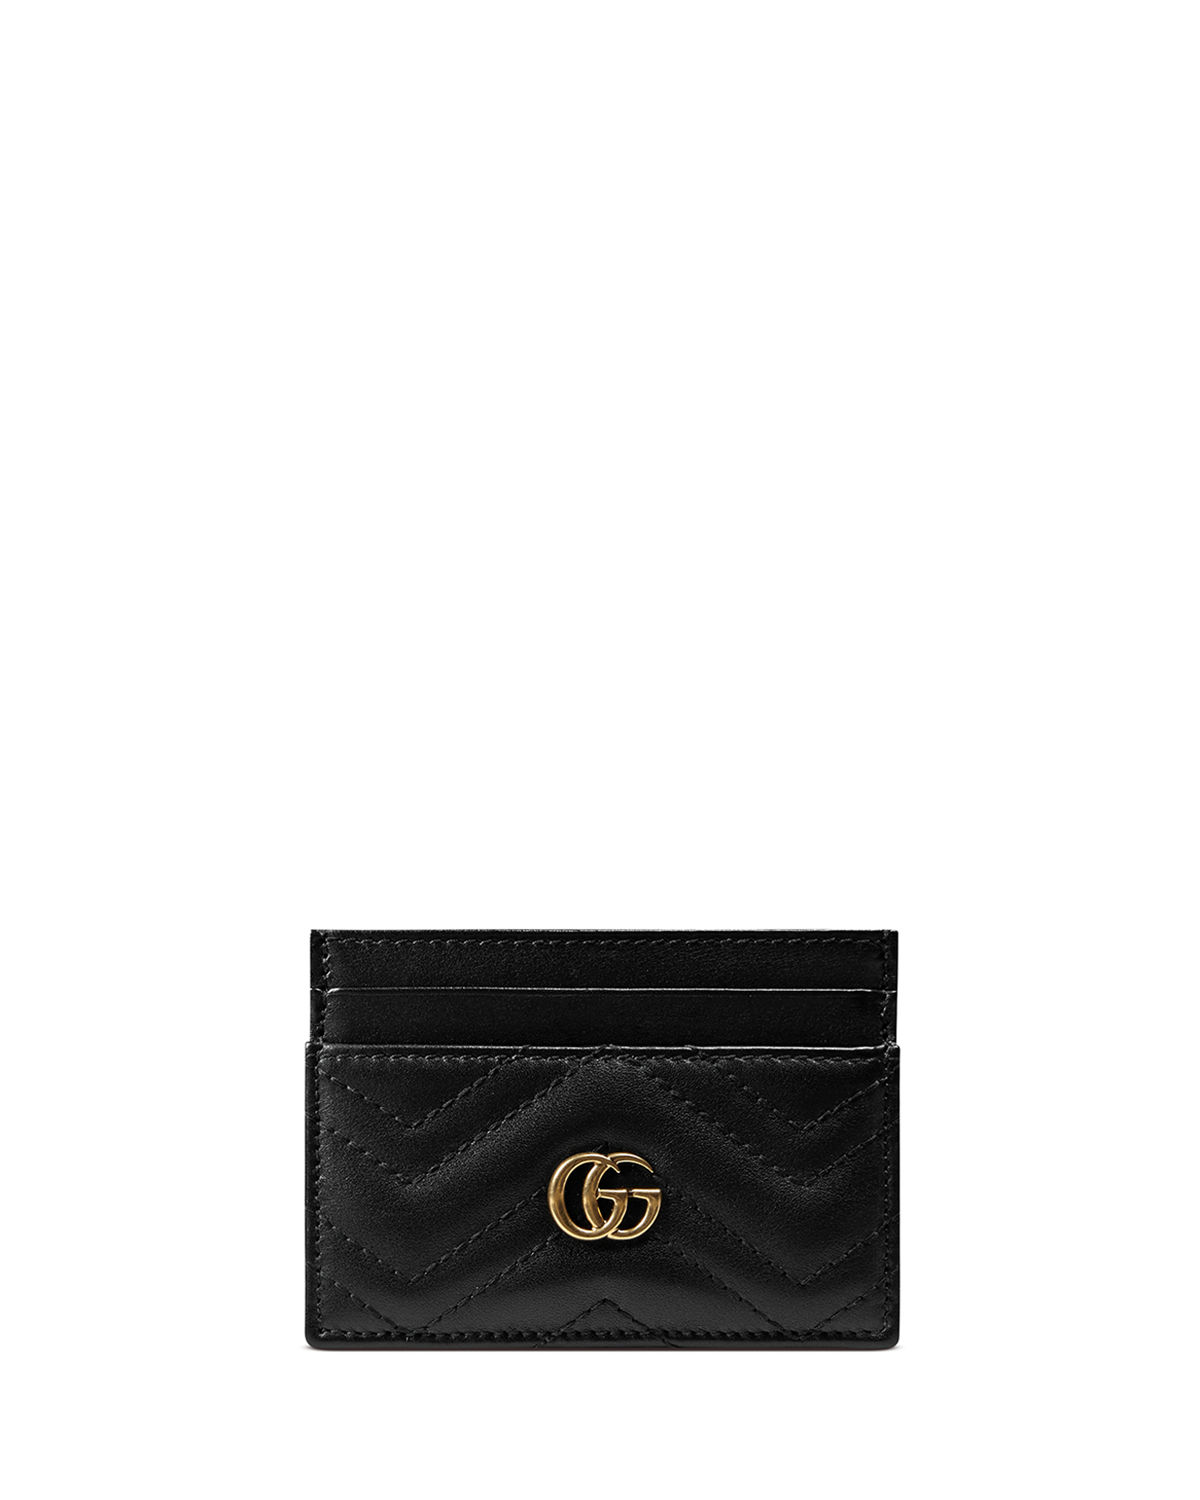 739662709acc73 Gucci GG Marmont Matelasse Card Case | Neiman Marcus